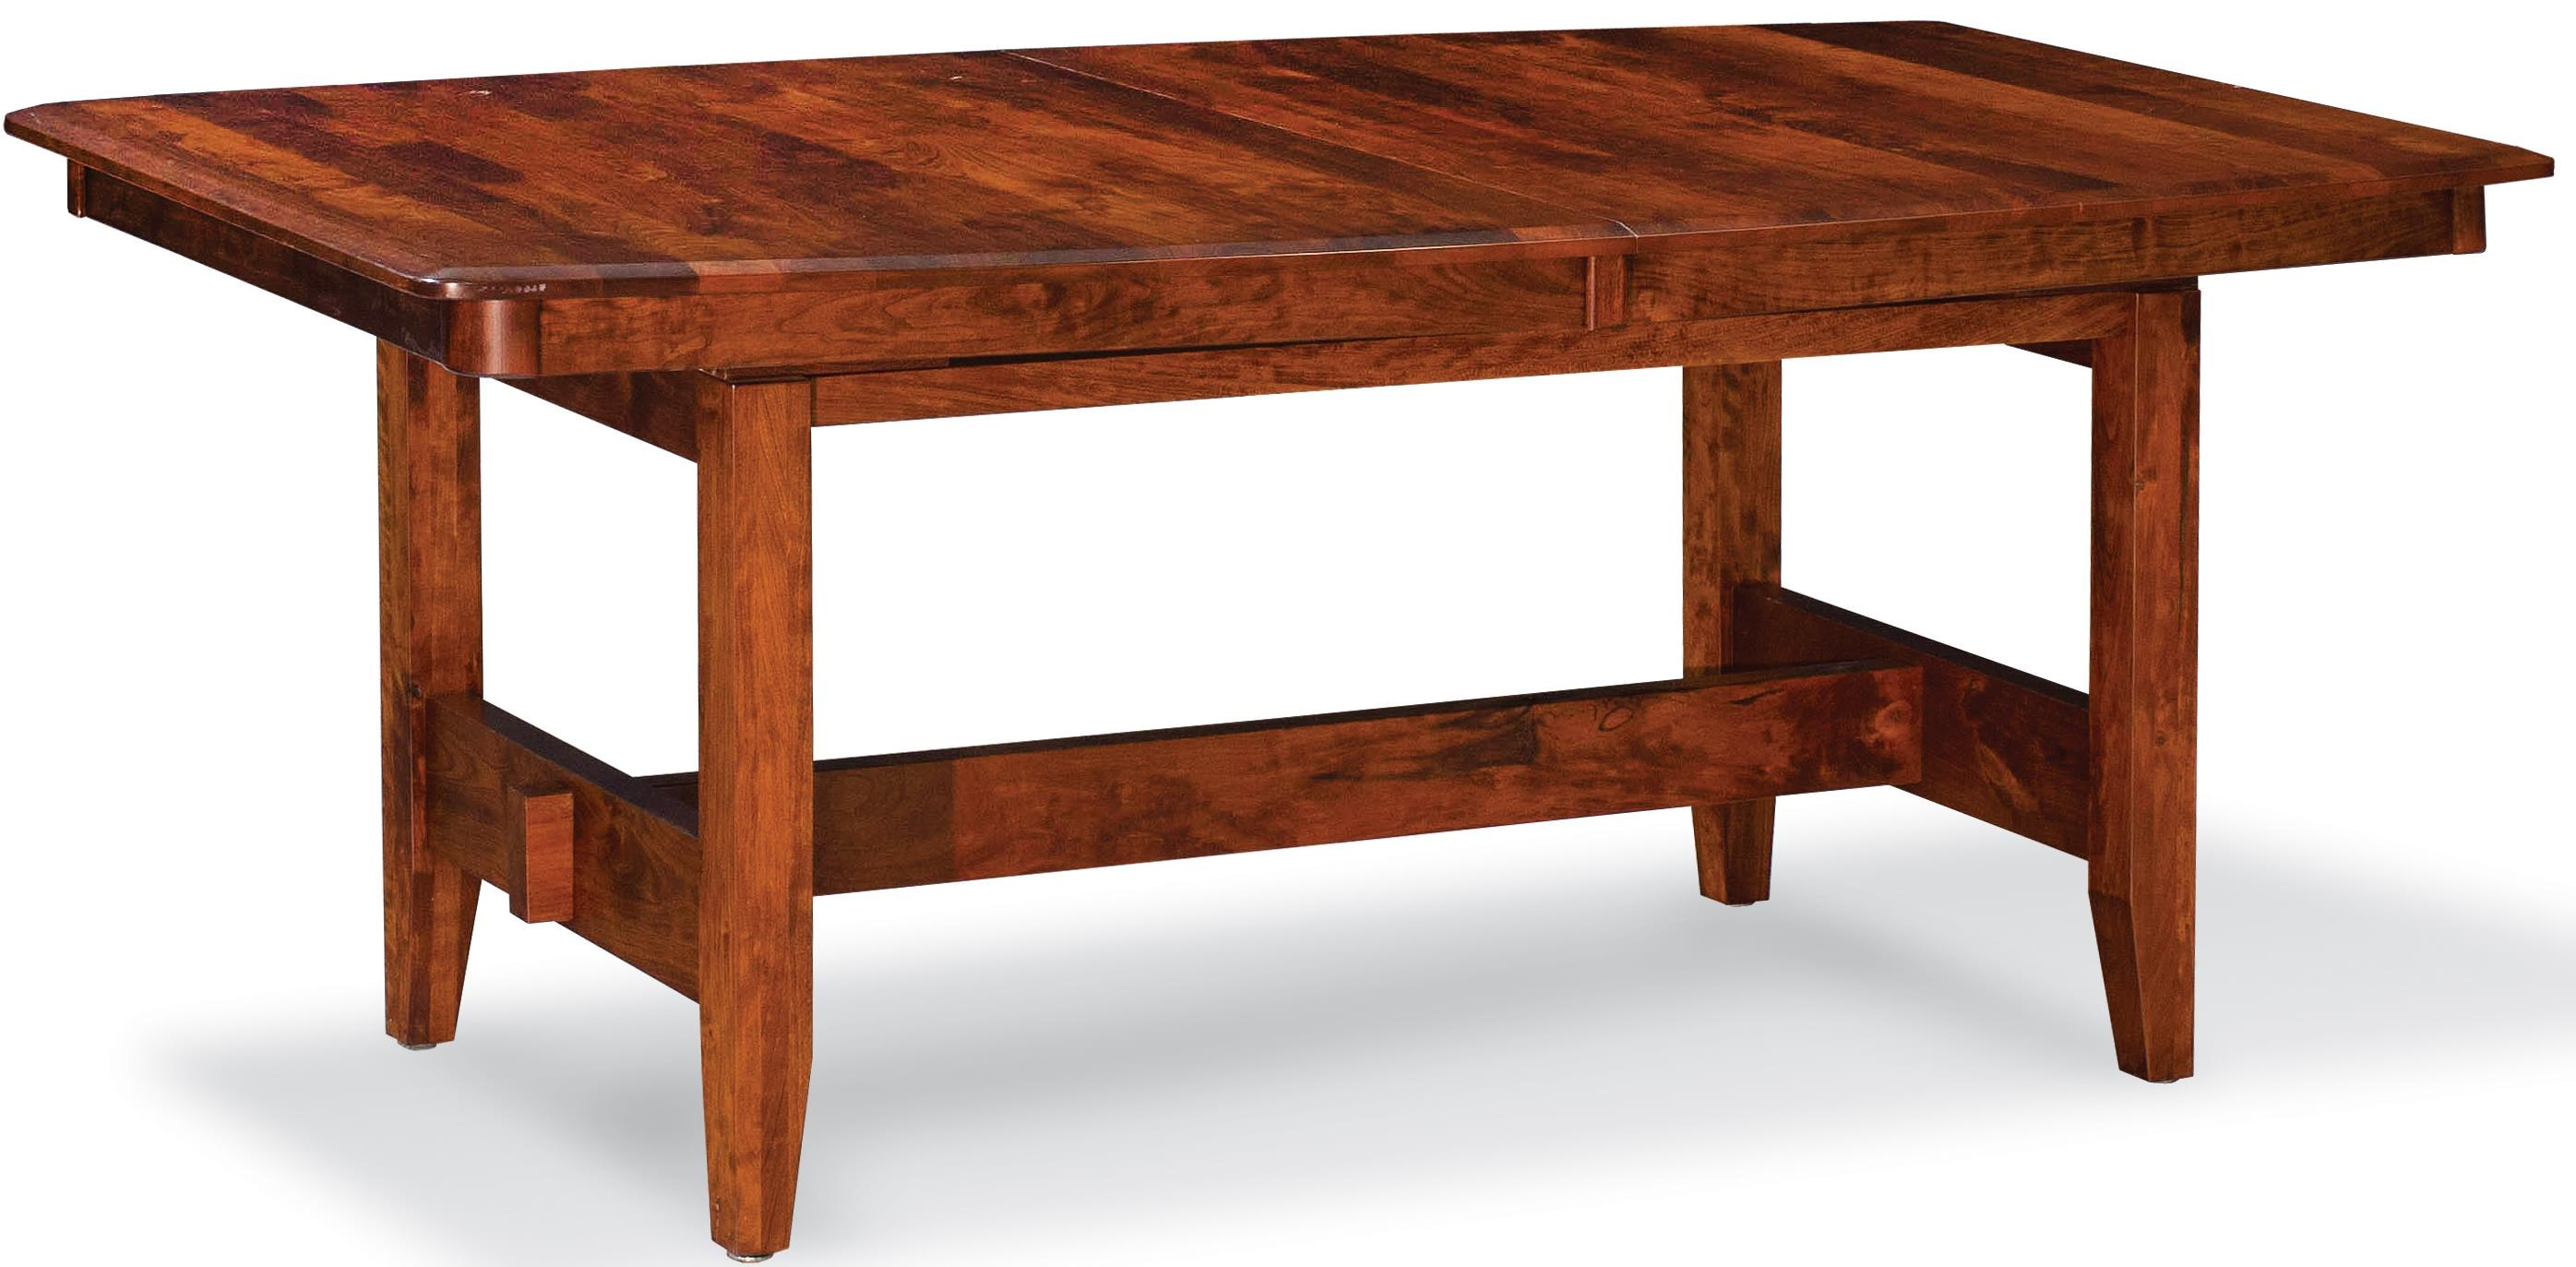 amish kitchen tables cool sinks simply shenandoah xk26 etshs h07f16e trestle table with 4 shenandoahtrestle